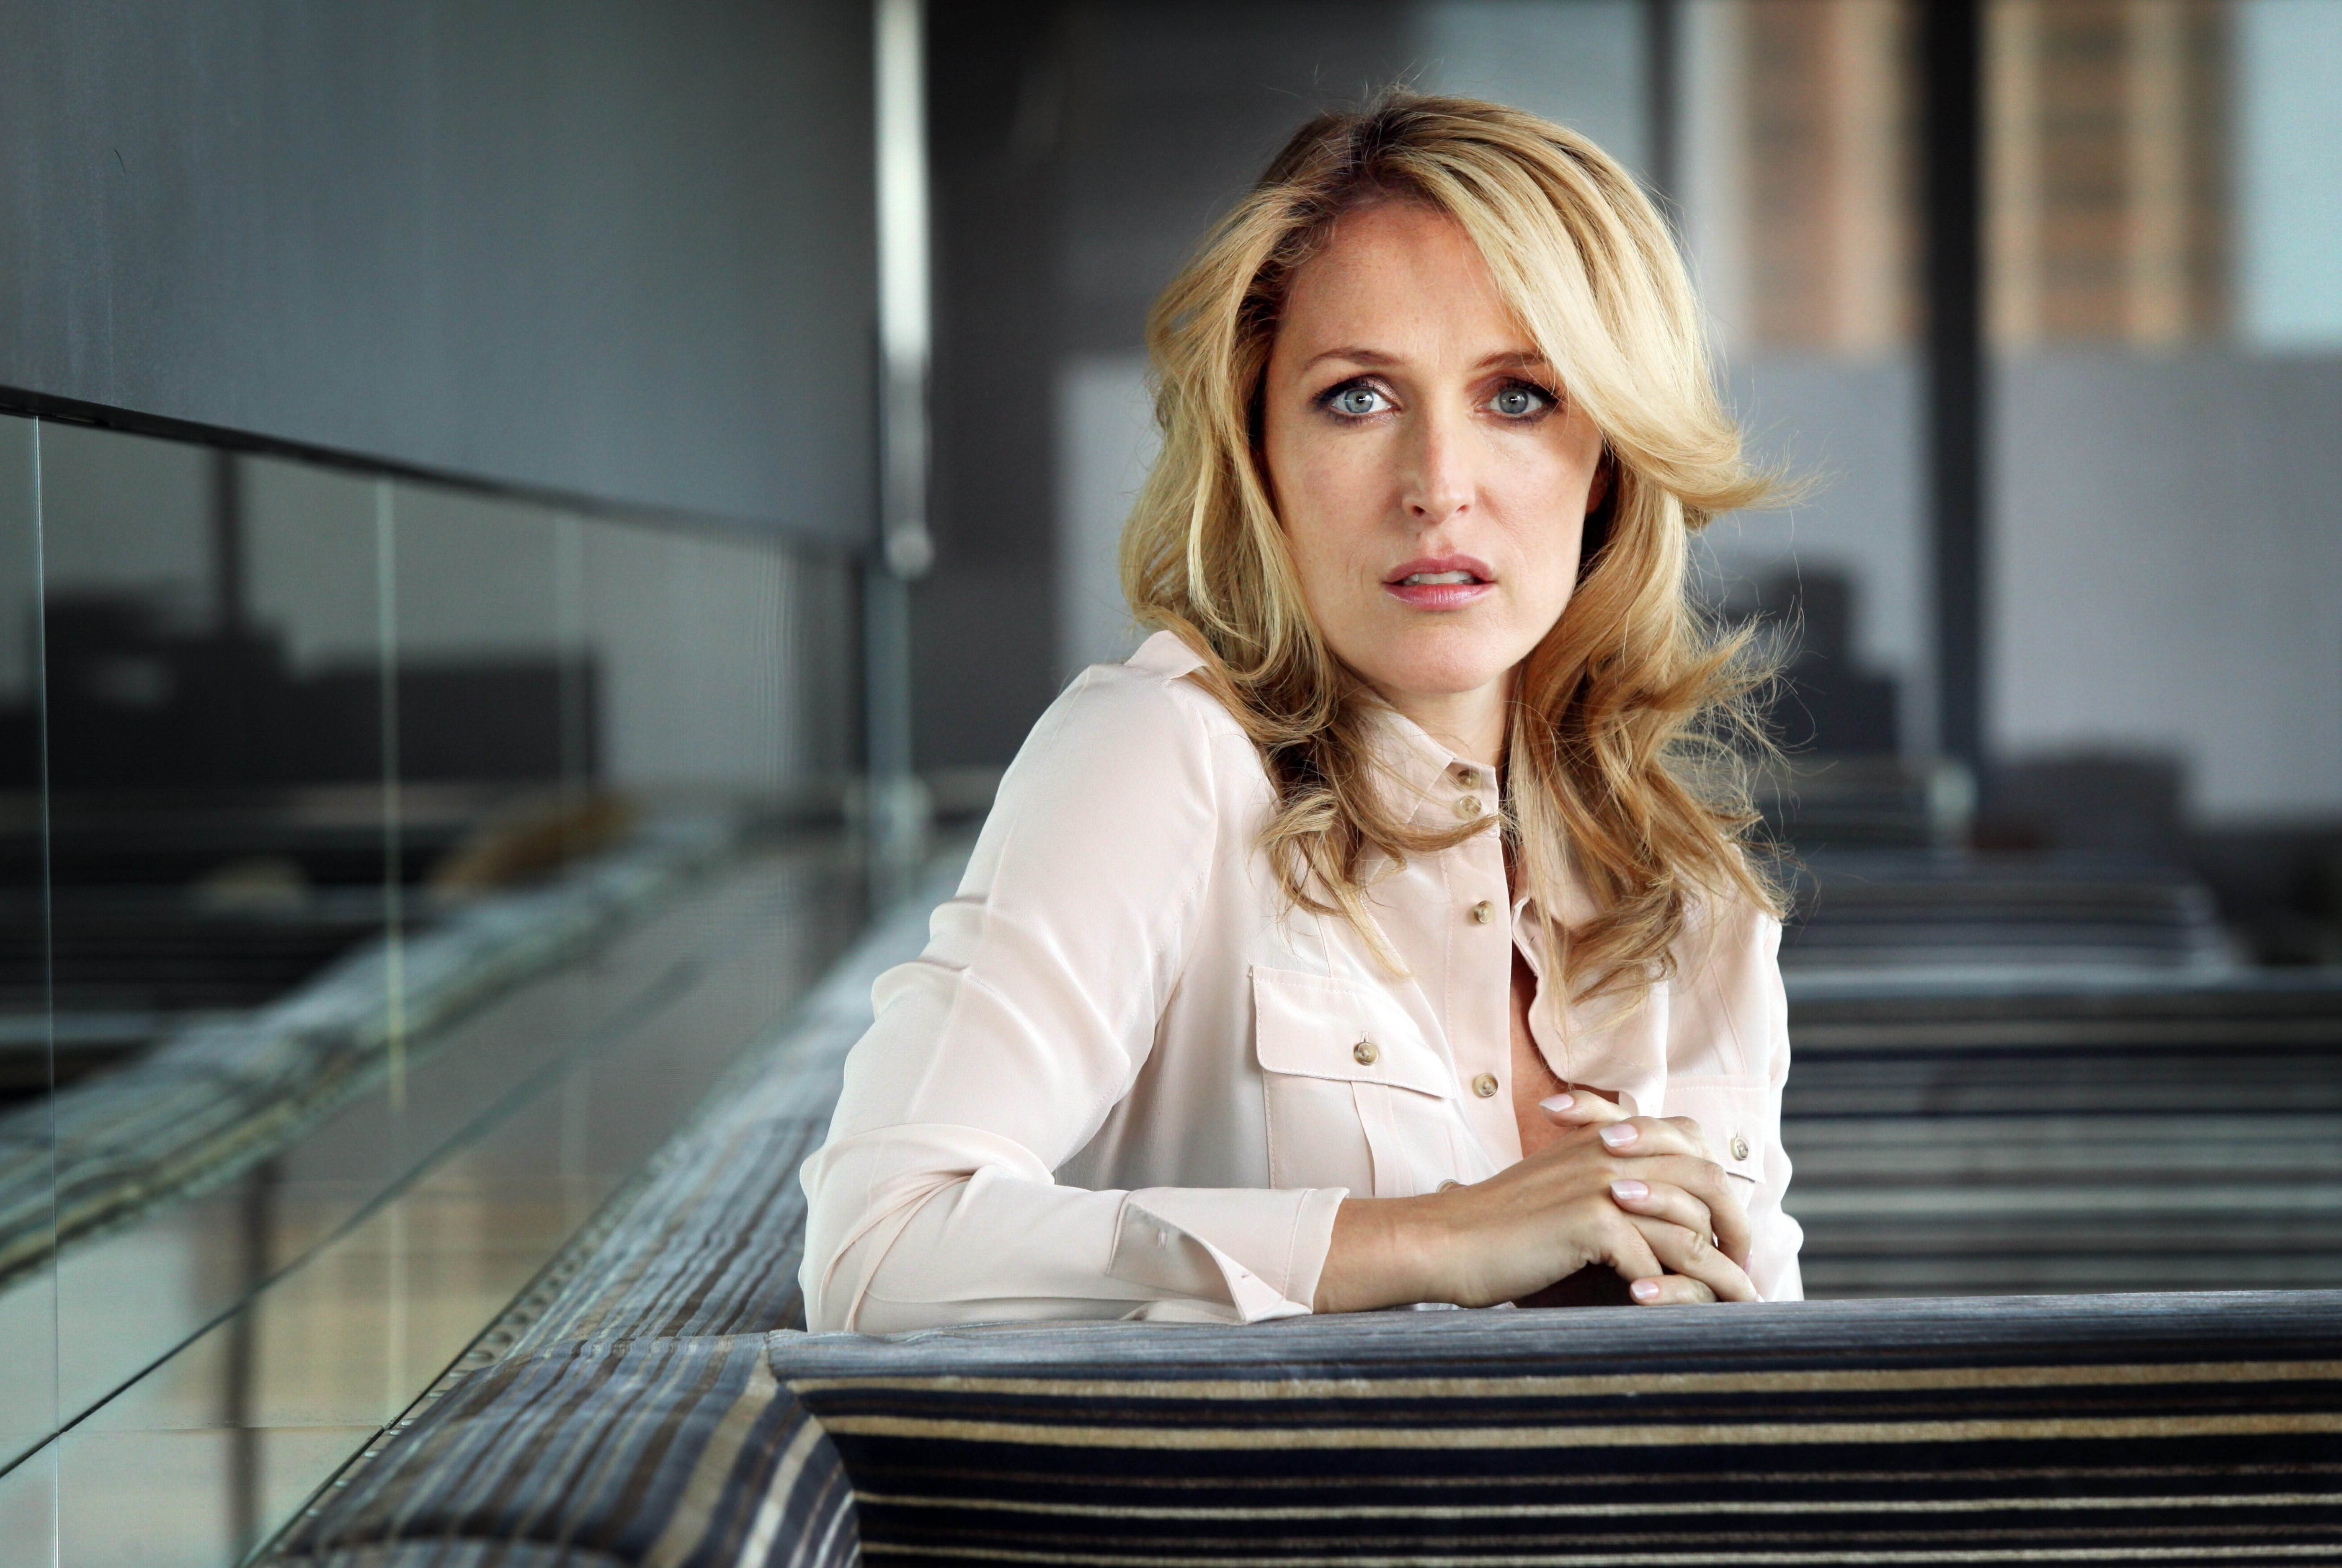 5592x3744 - Gillian Anderson Wallpapers 8